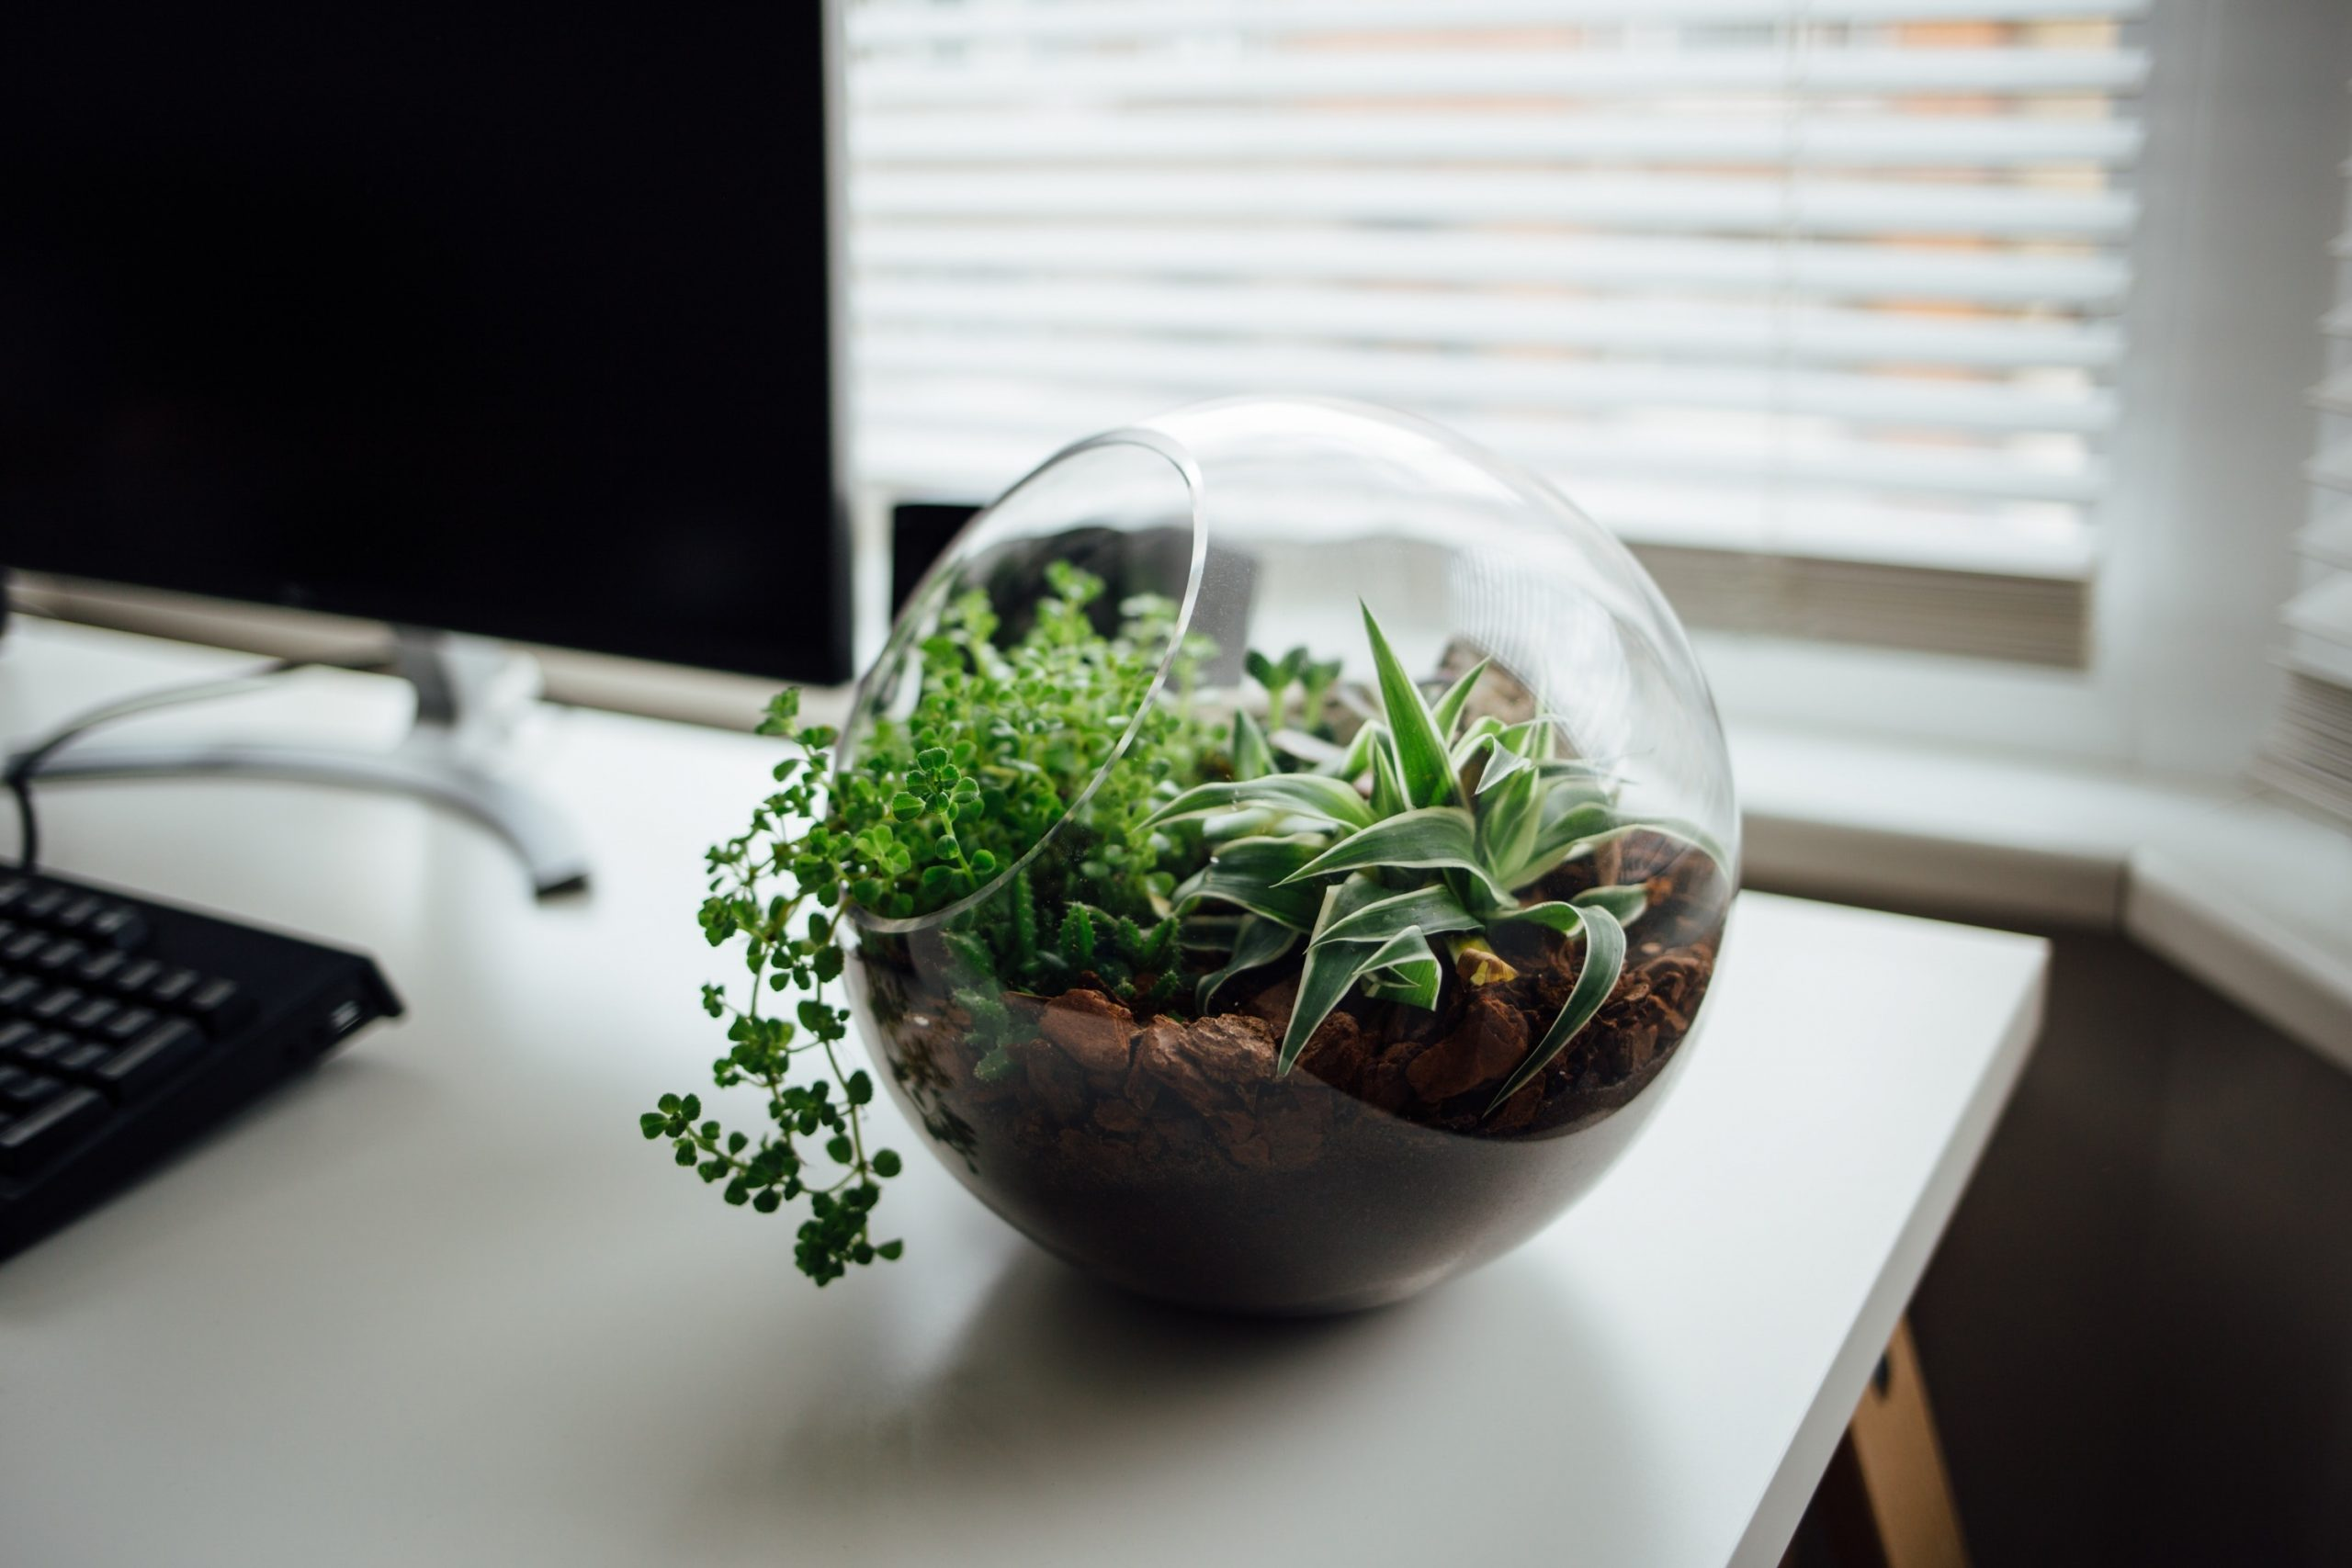 Why Should You Have Plants in Your Office?